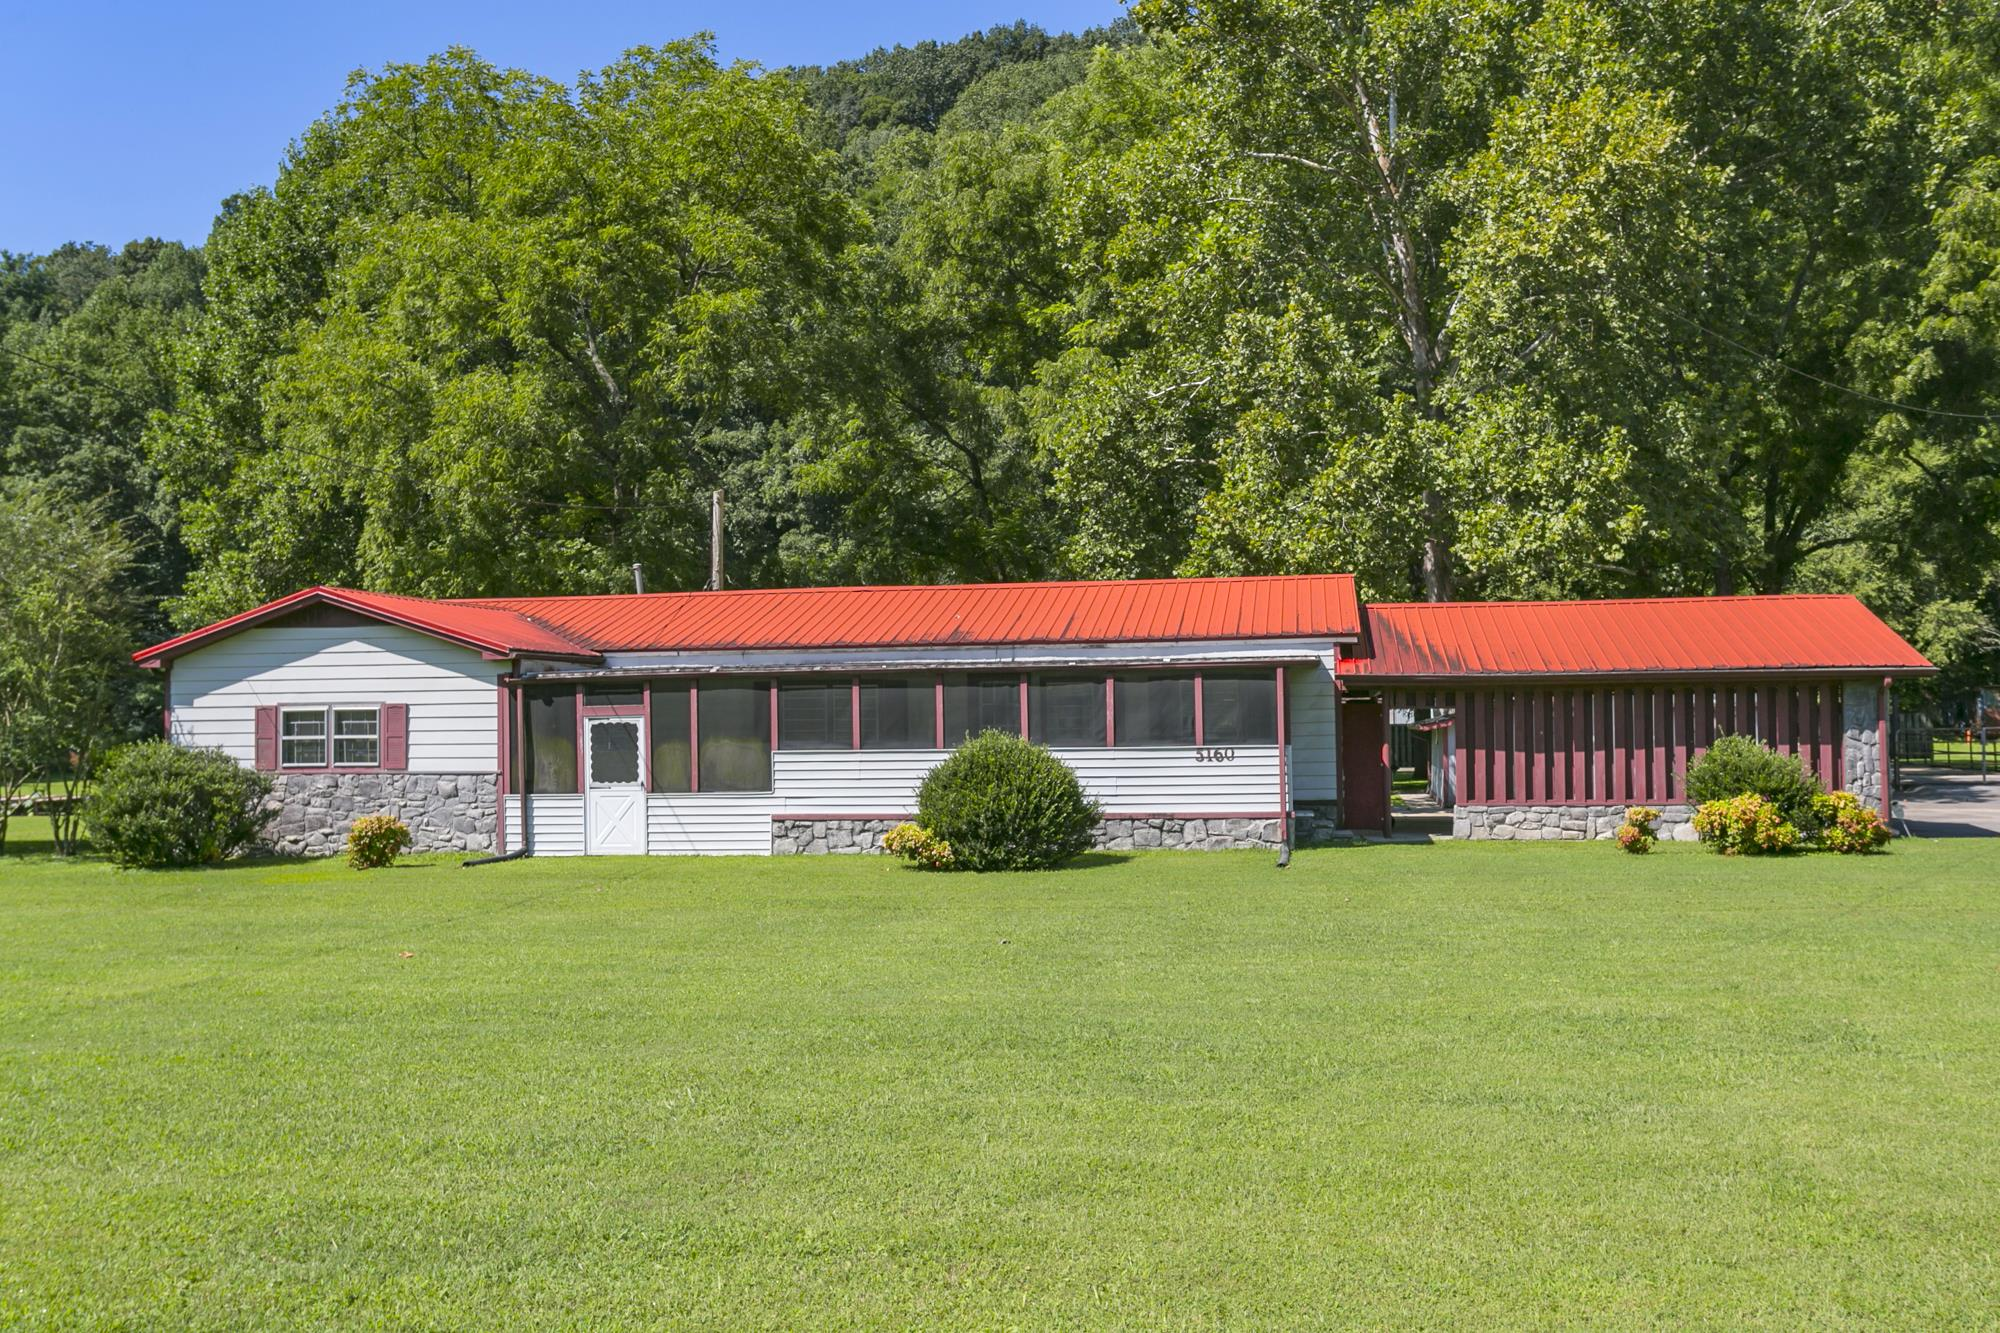 5160 Whites Creek Pike, Whites Creek, TN 37189 - Whites Creek, TN real estate listing